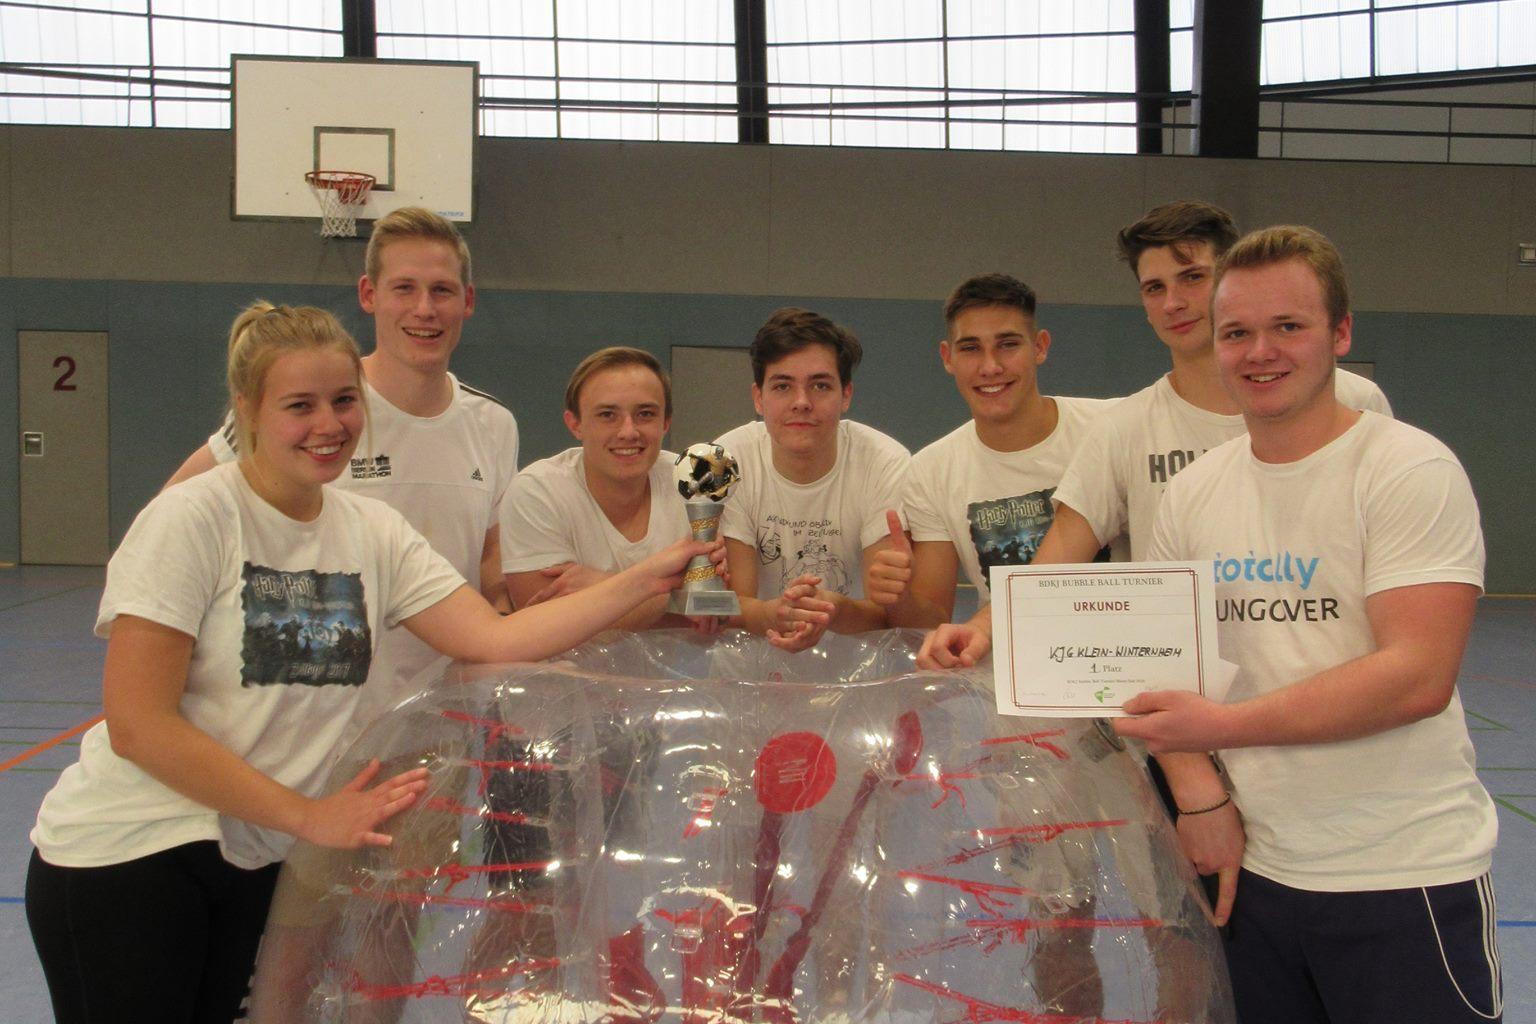 Gewinner des BDKJ Bubble Ball Turnier Mainz Süd 2018 (c) kjzmzsued